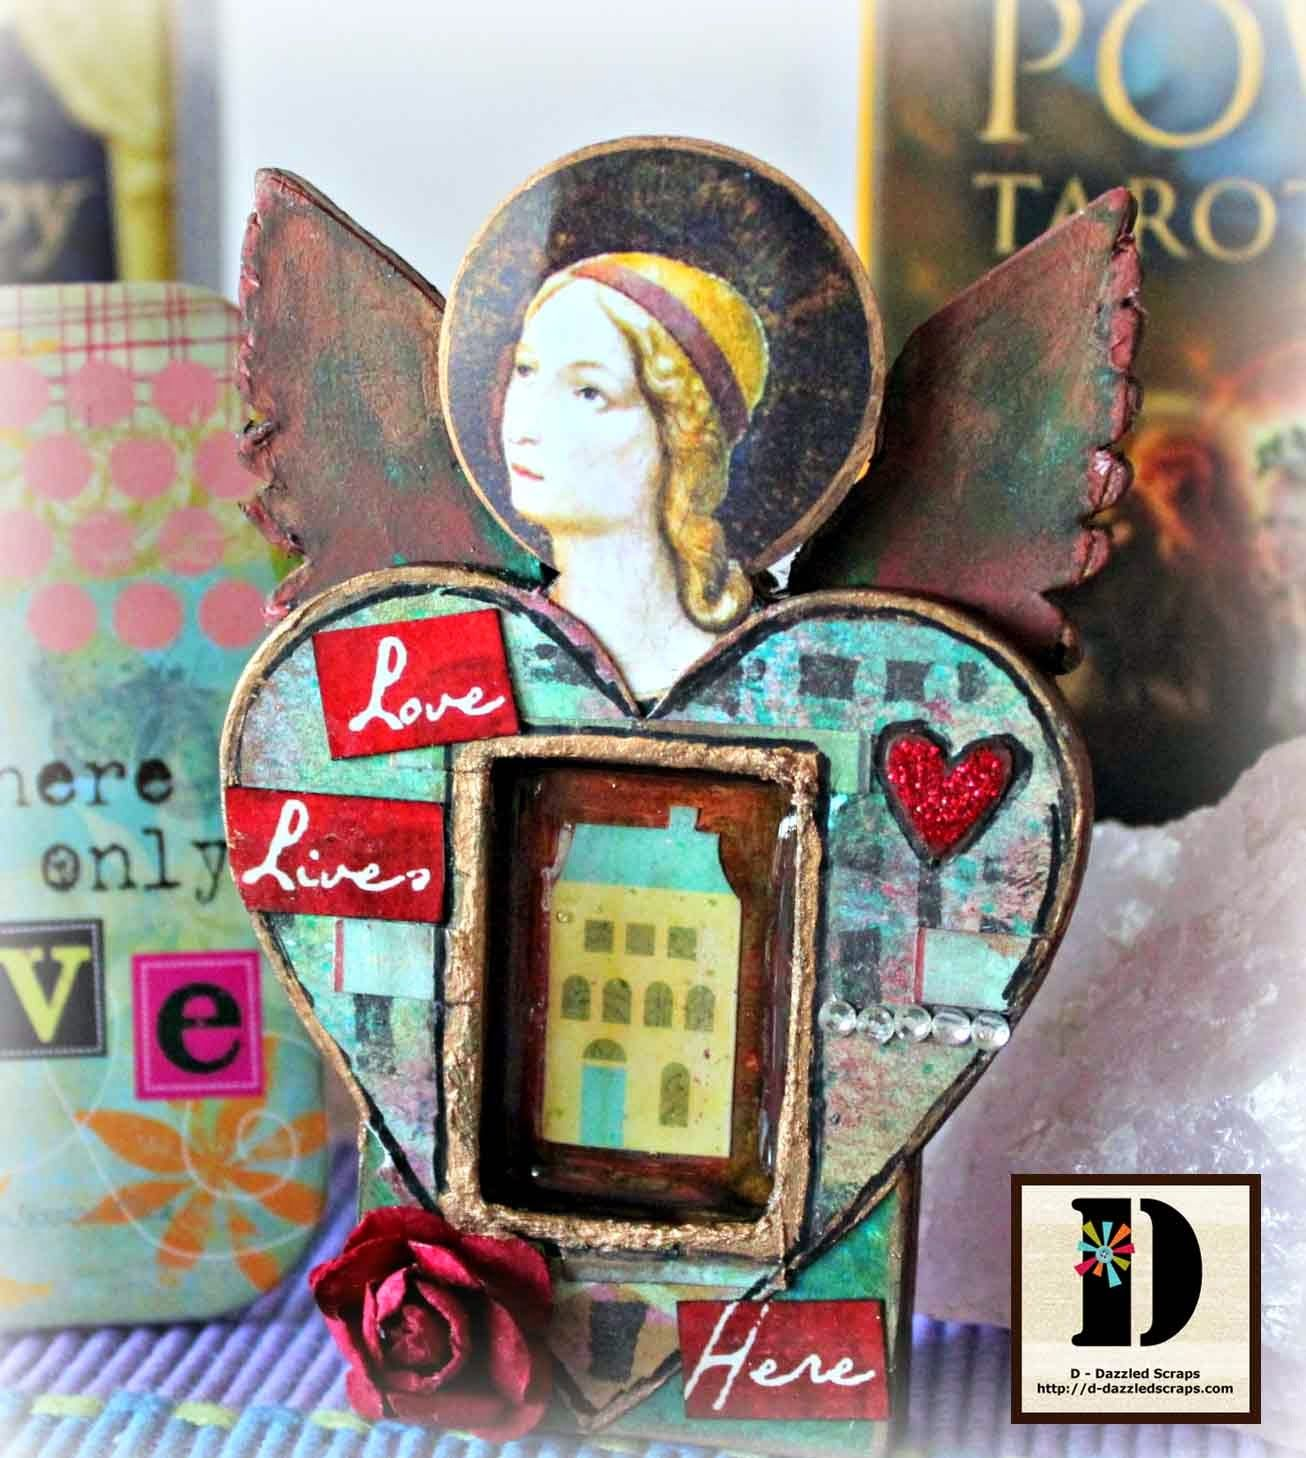 I then decorated her body and wings with a scrap piece from a Gelli Print and her main body (the heart) with a piece I created using stencils and my Pan Pastels.  D-Dazzled Scraps: Love Lives Here - A Sweetheart Fairy Shrine